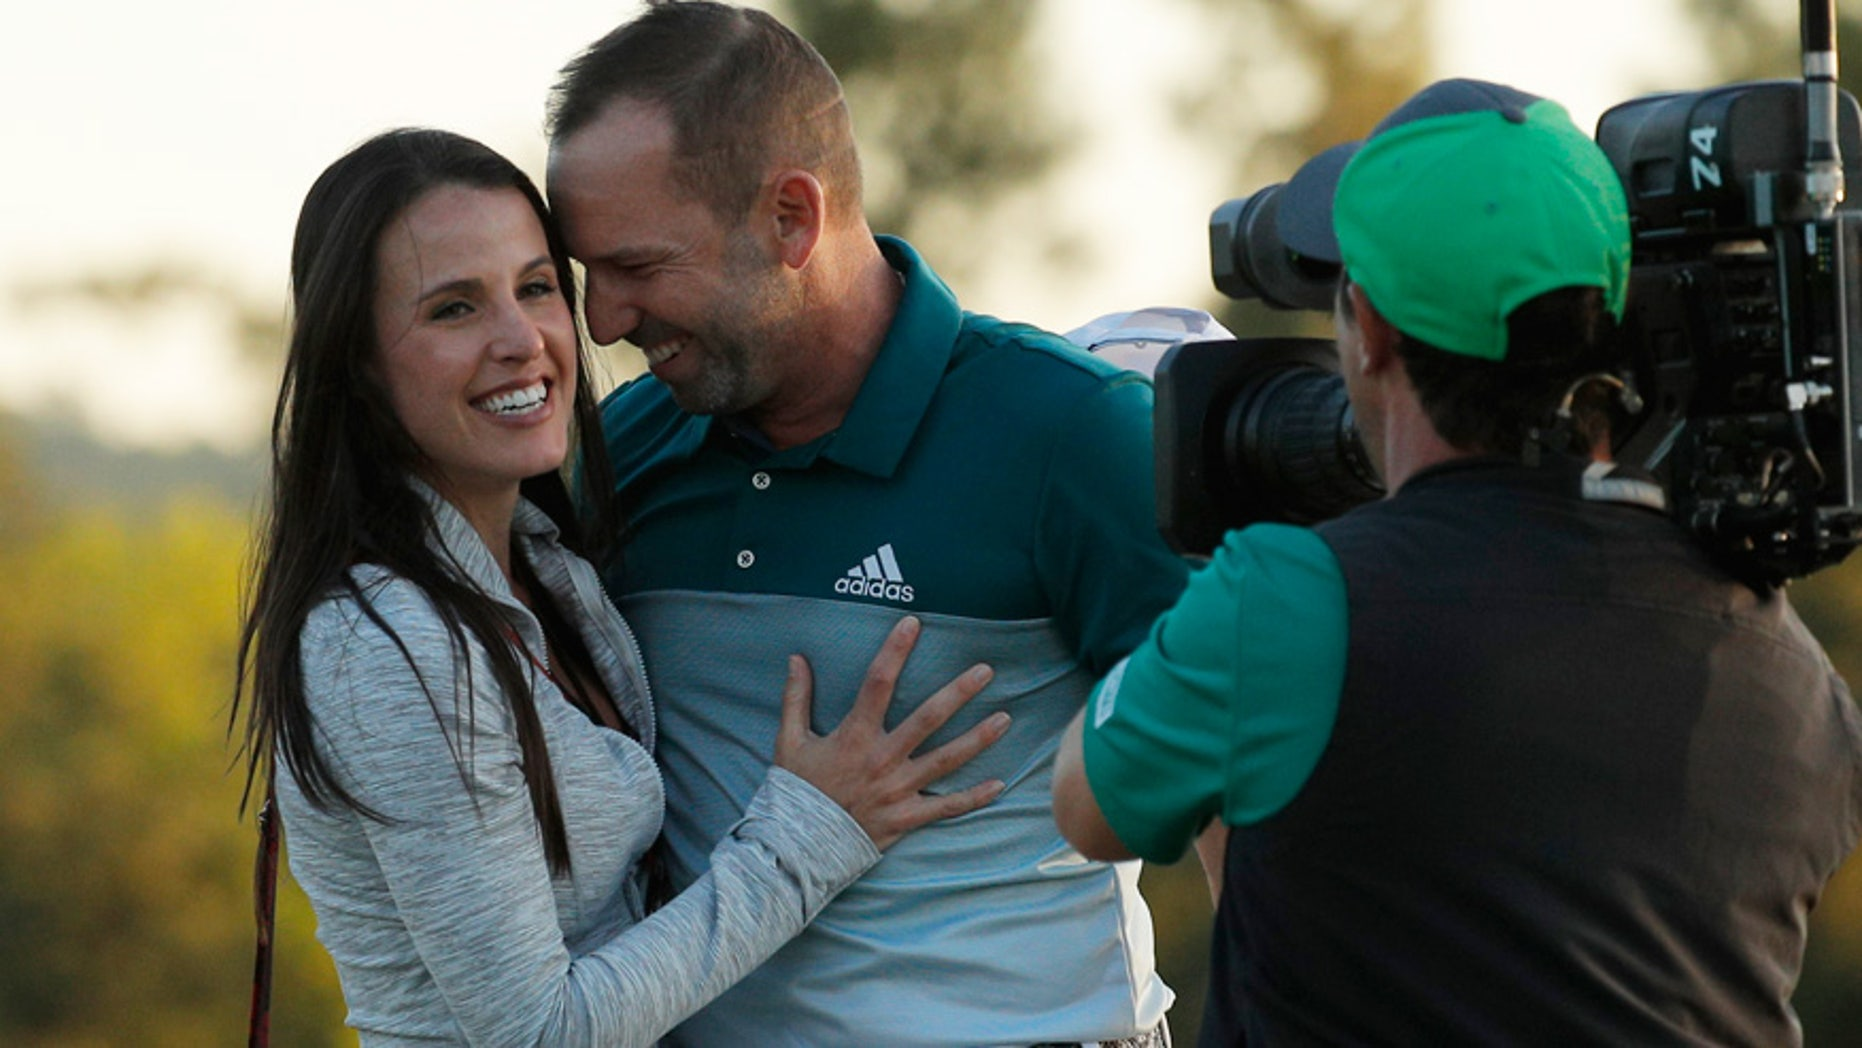 Sergio Garcia of Spain embraces Angela Akins after he won the 2017 Masters golf tournament in a playoff against Justin Rose of England at Augusta National Golf Club in Augusta, Georgia.